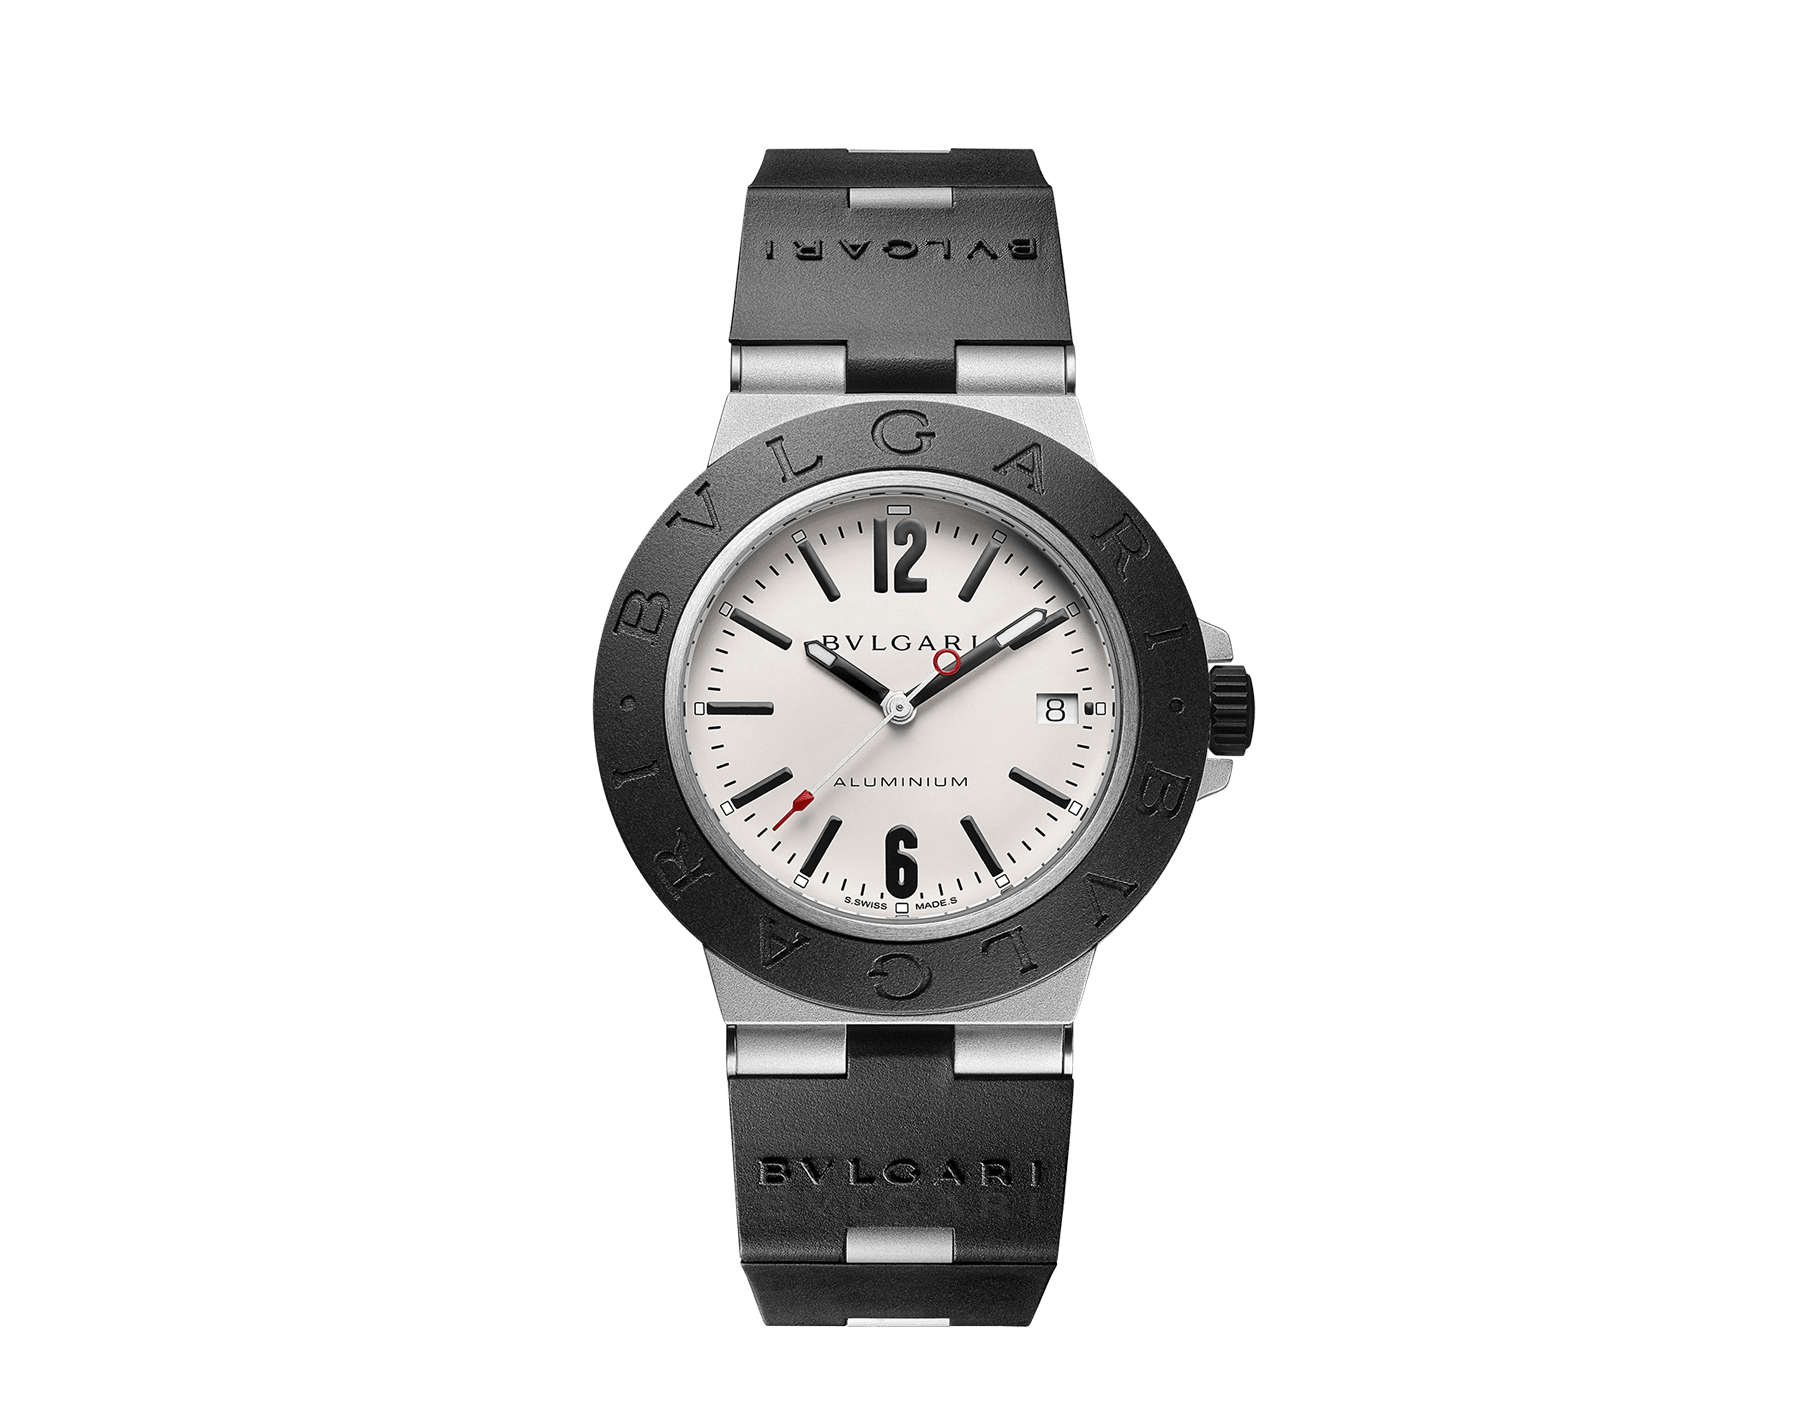 Bvlgari Aluminium watch with mechanical manufacture movement, automatic winding, 40 mm aluminium case, black rubber bezel with BVLGARI BVLGARI engraving, grey dial and black rubber bracelet. Water resistant up to 100 metres 103382 image 1